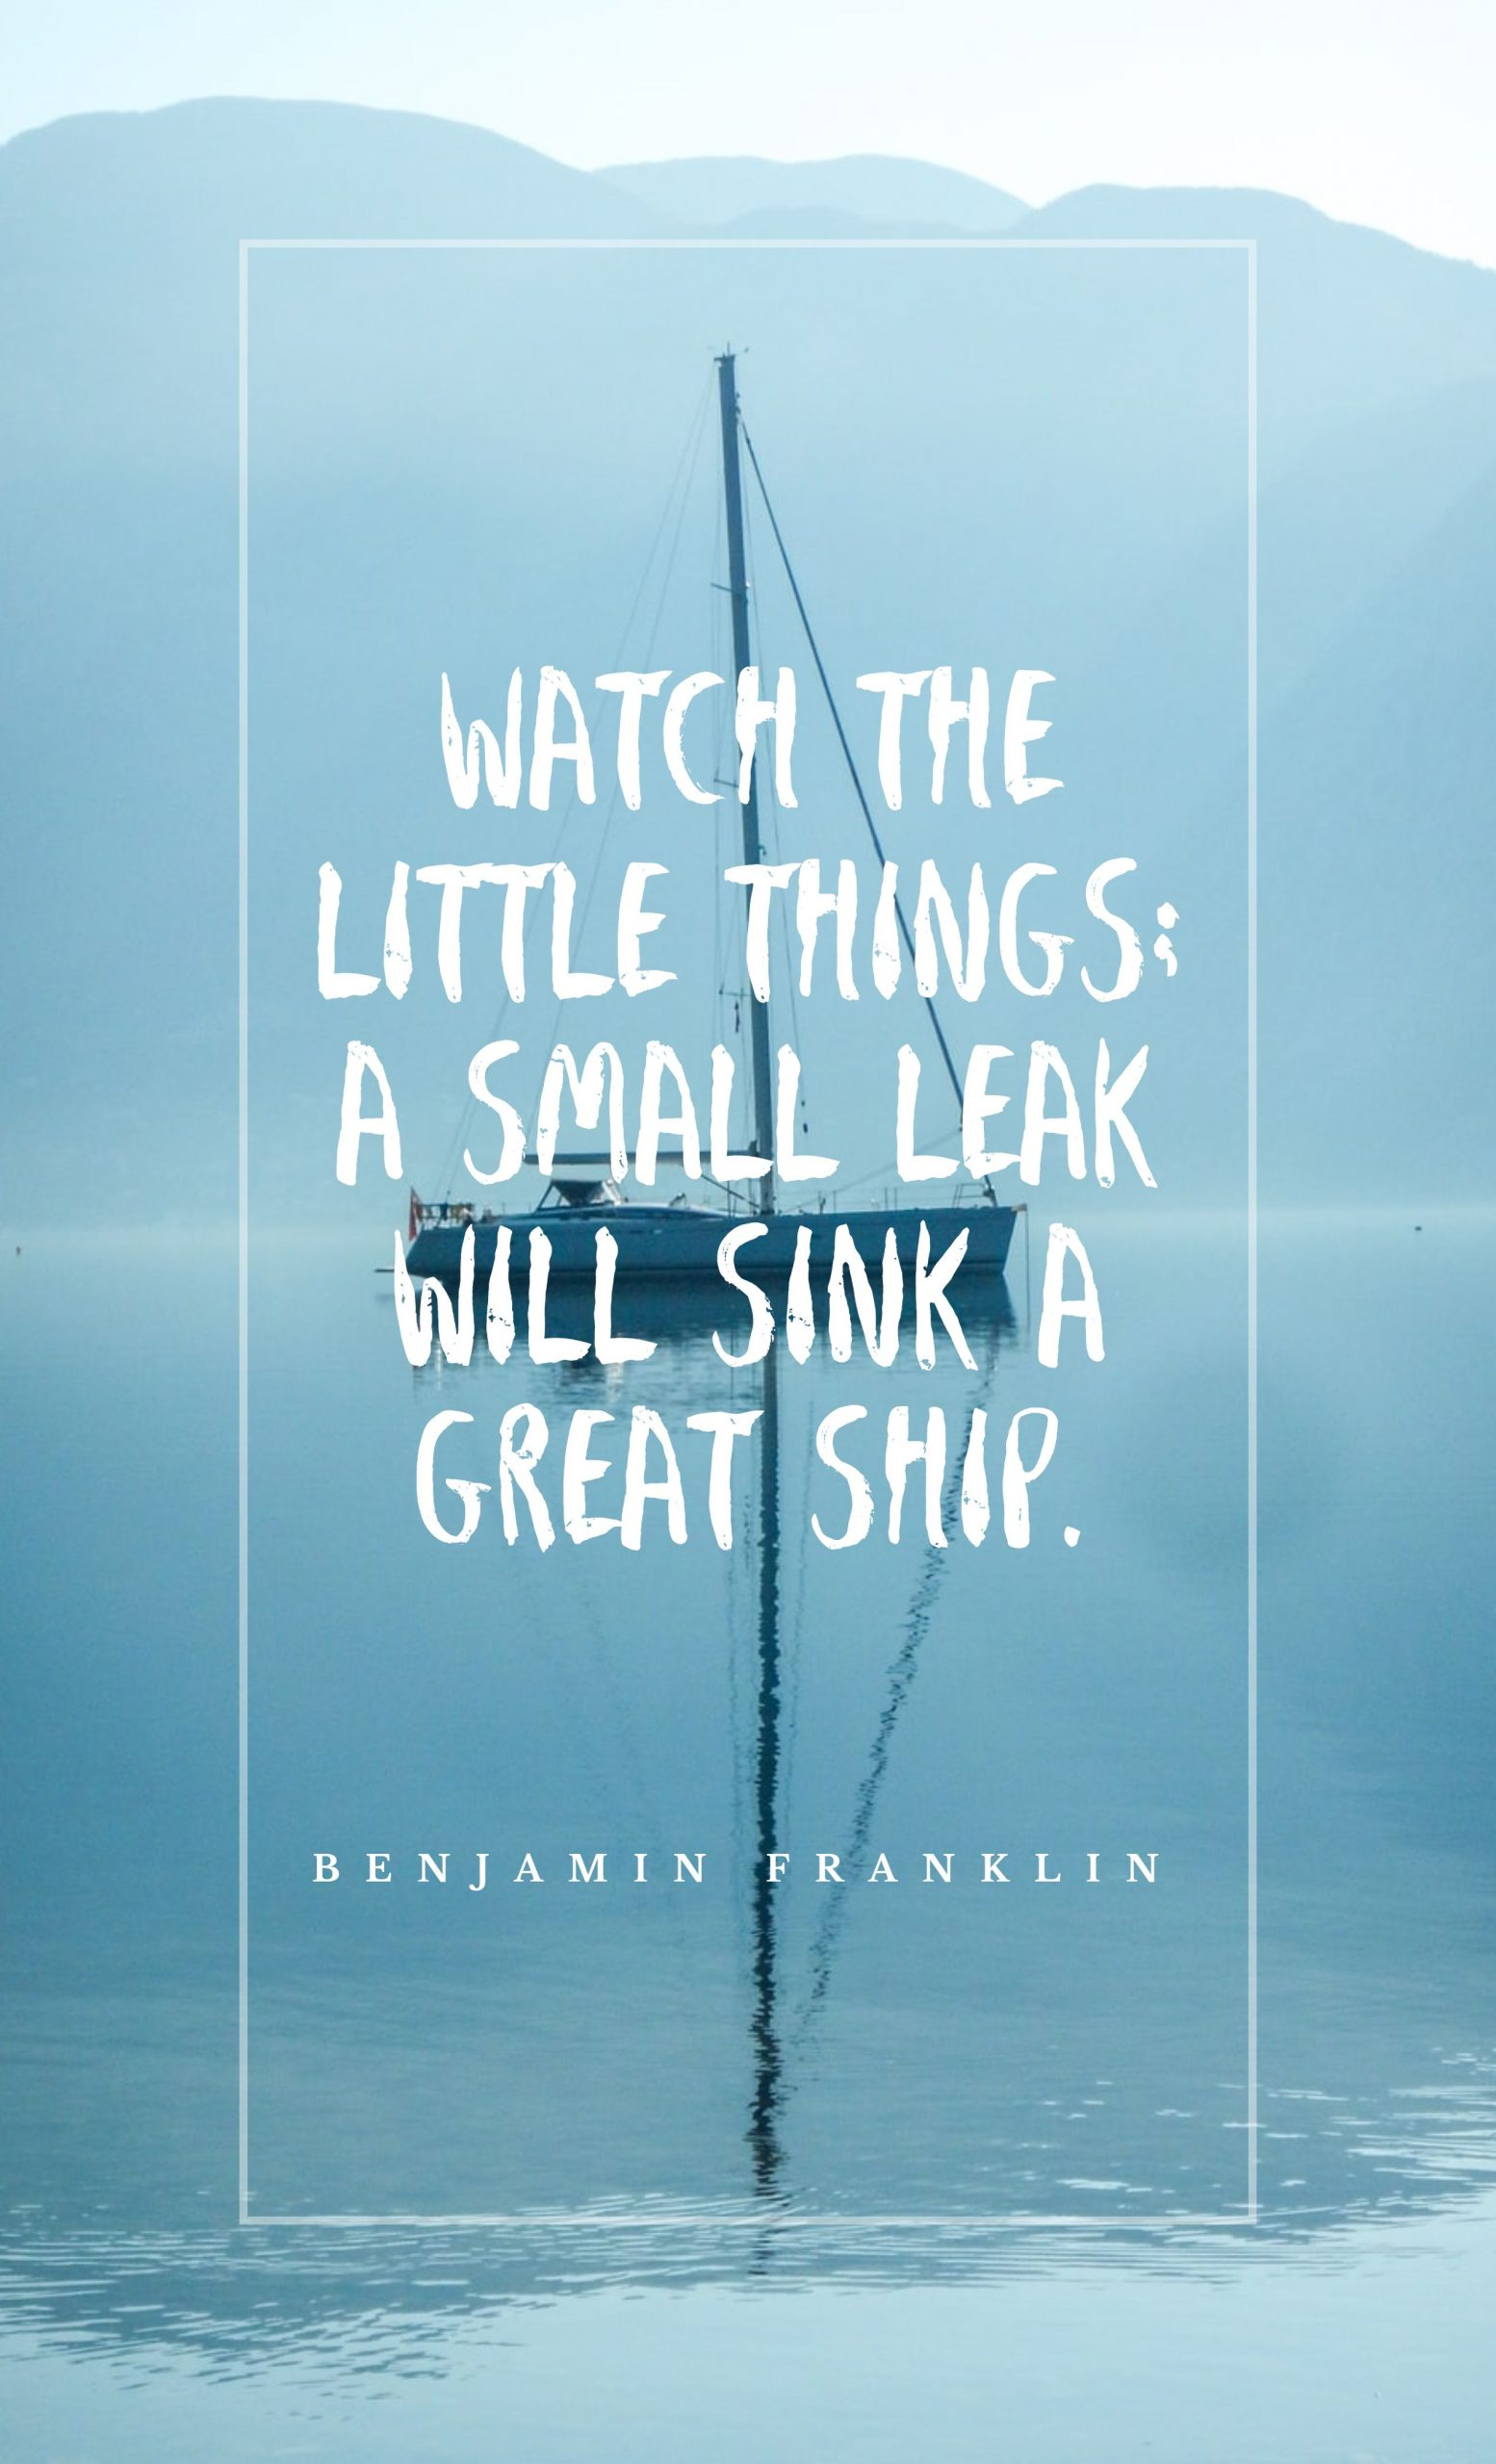 Quotes image of Watch the little things; a small leak will sink a great ship.